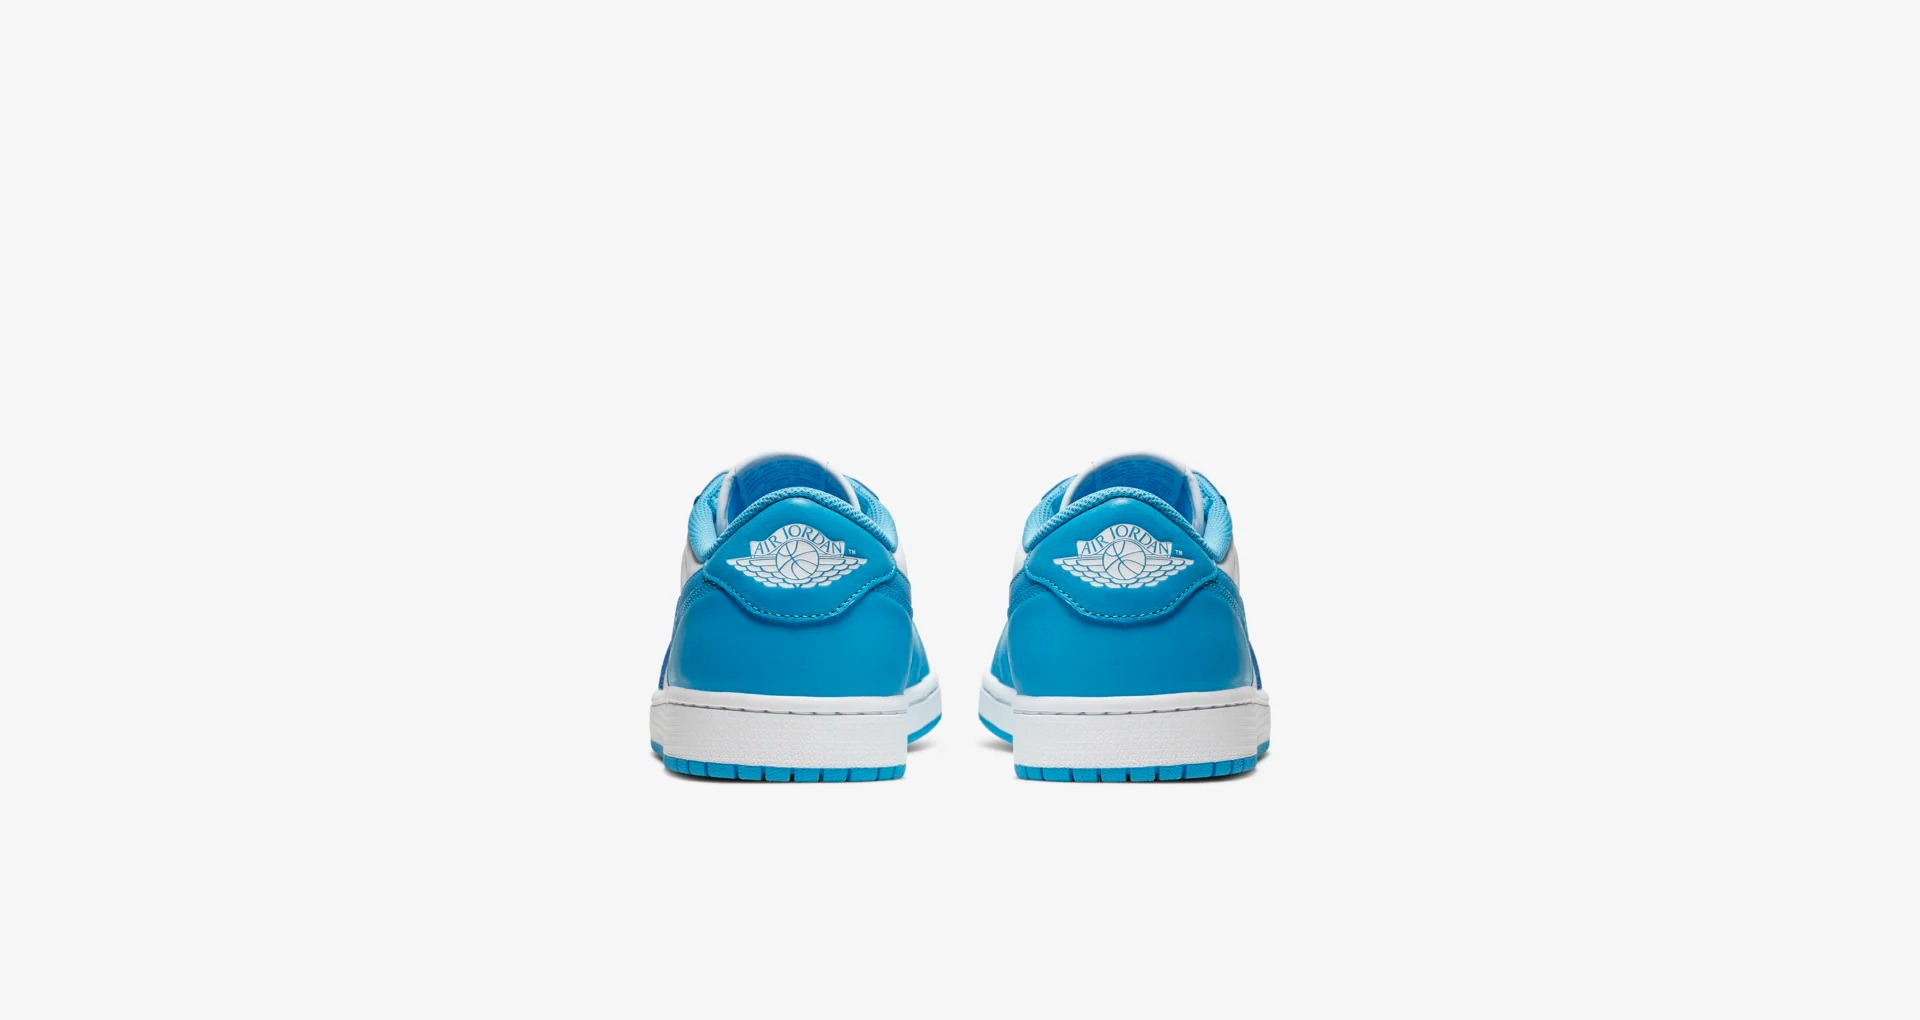 CJ7891 401 Air Jordan 1 Low SB Dark Powder Blue 6